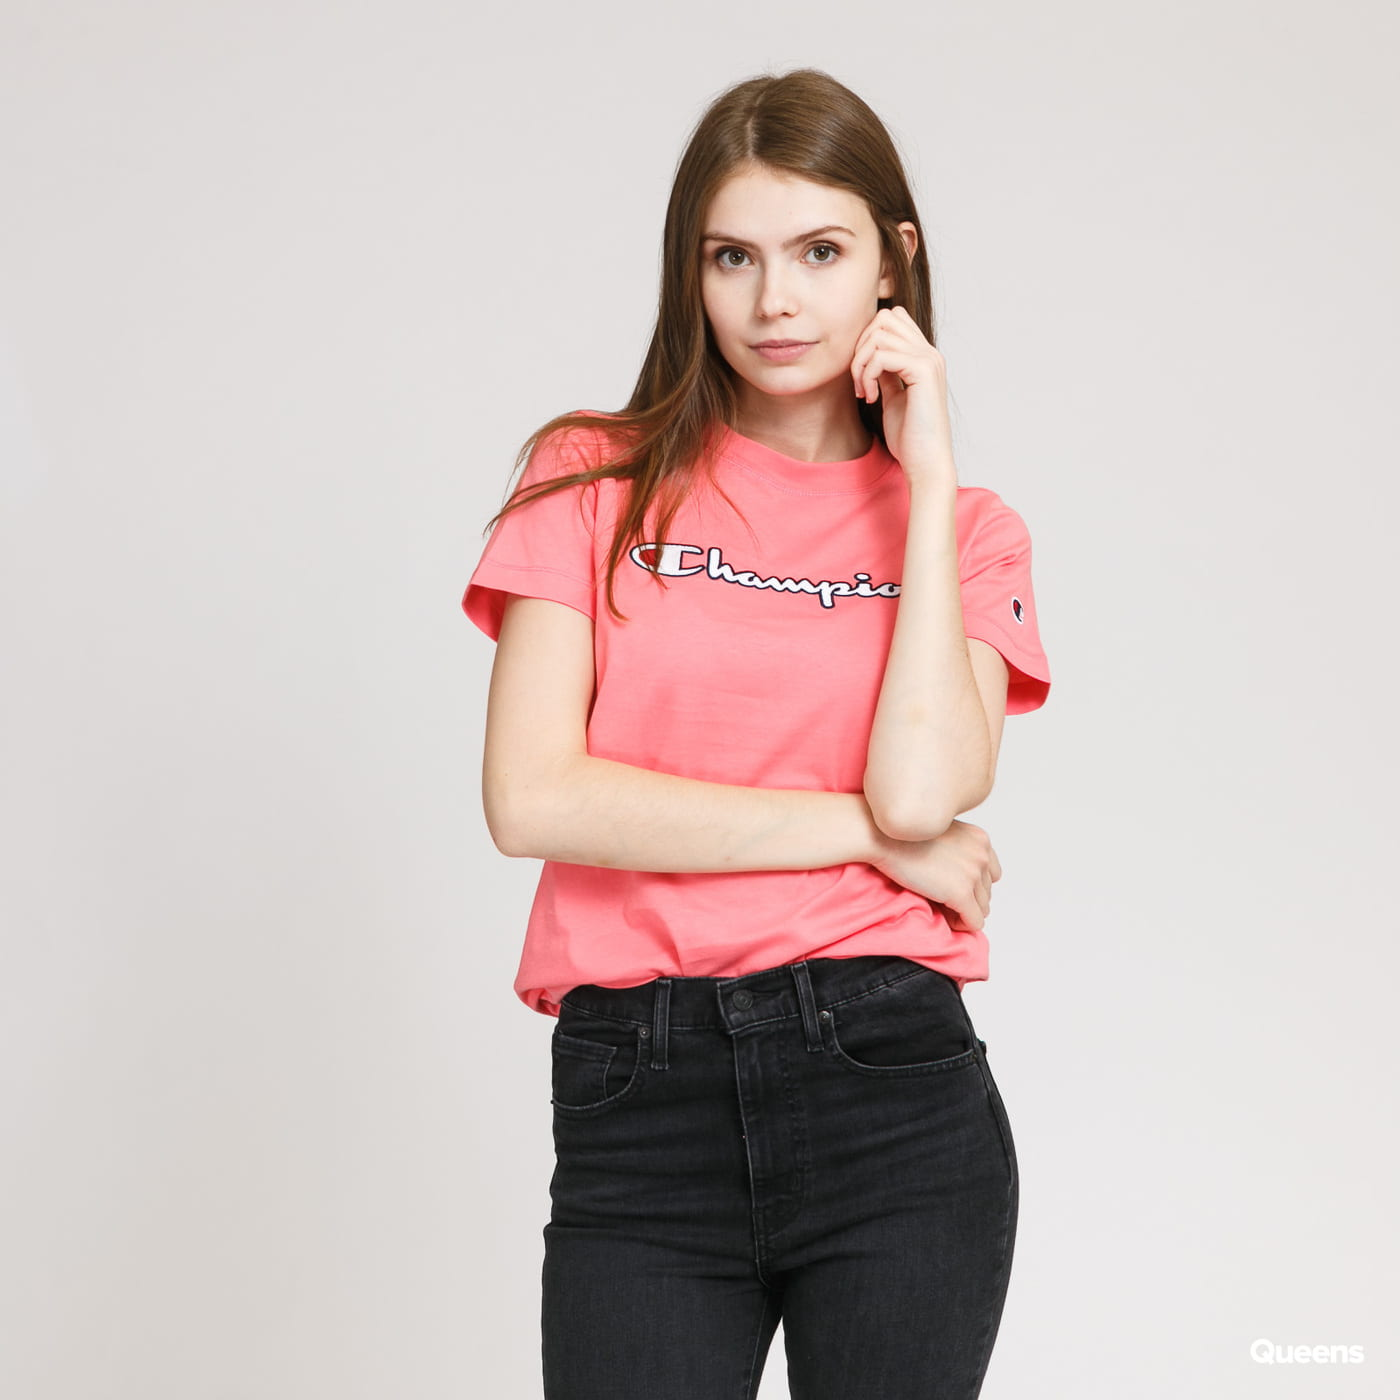 Champion A pink ladies' t-shirt from Champion with chest and sleeve logos.Size L pictured.The model is 175 cm tall and weighs 52 kg. pink